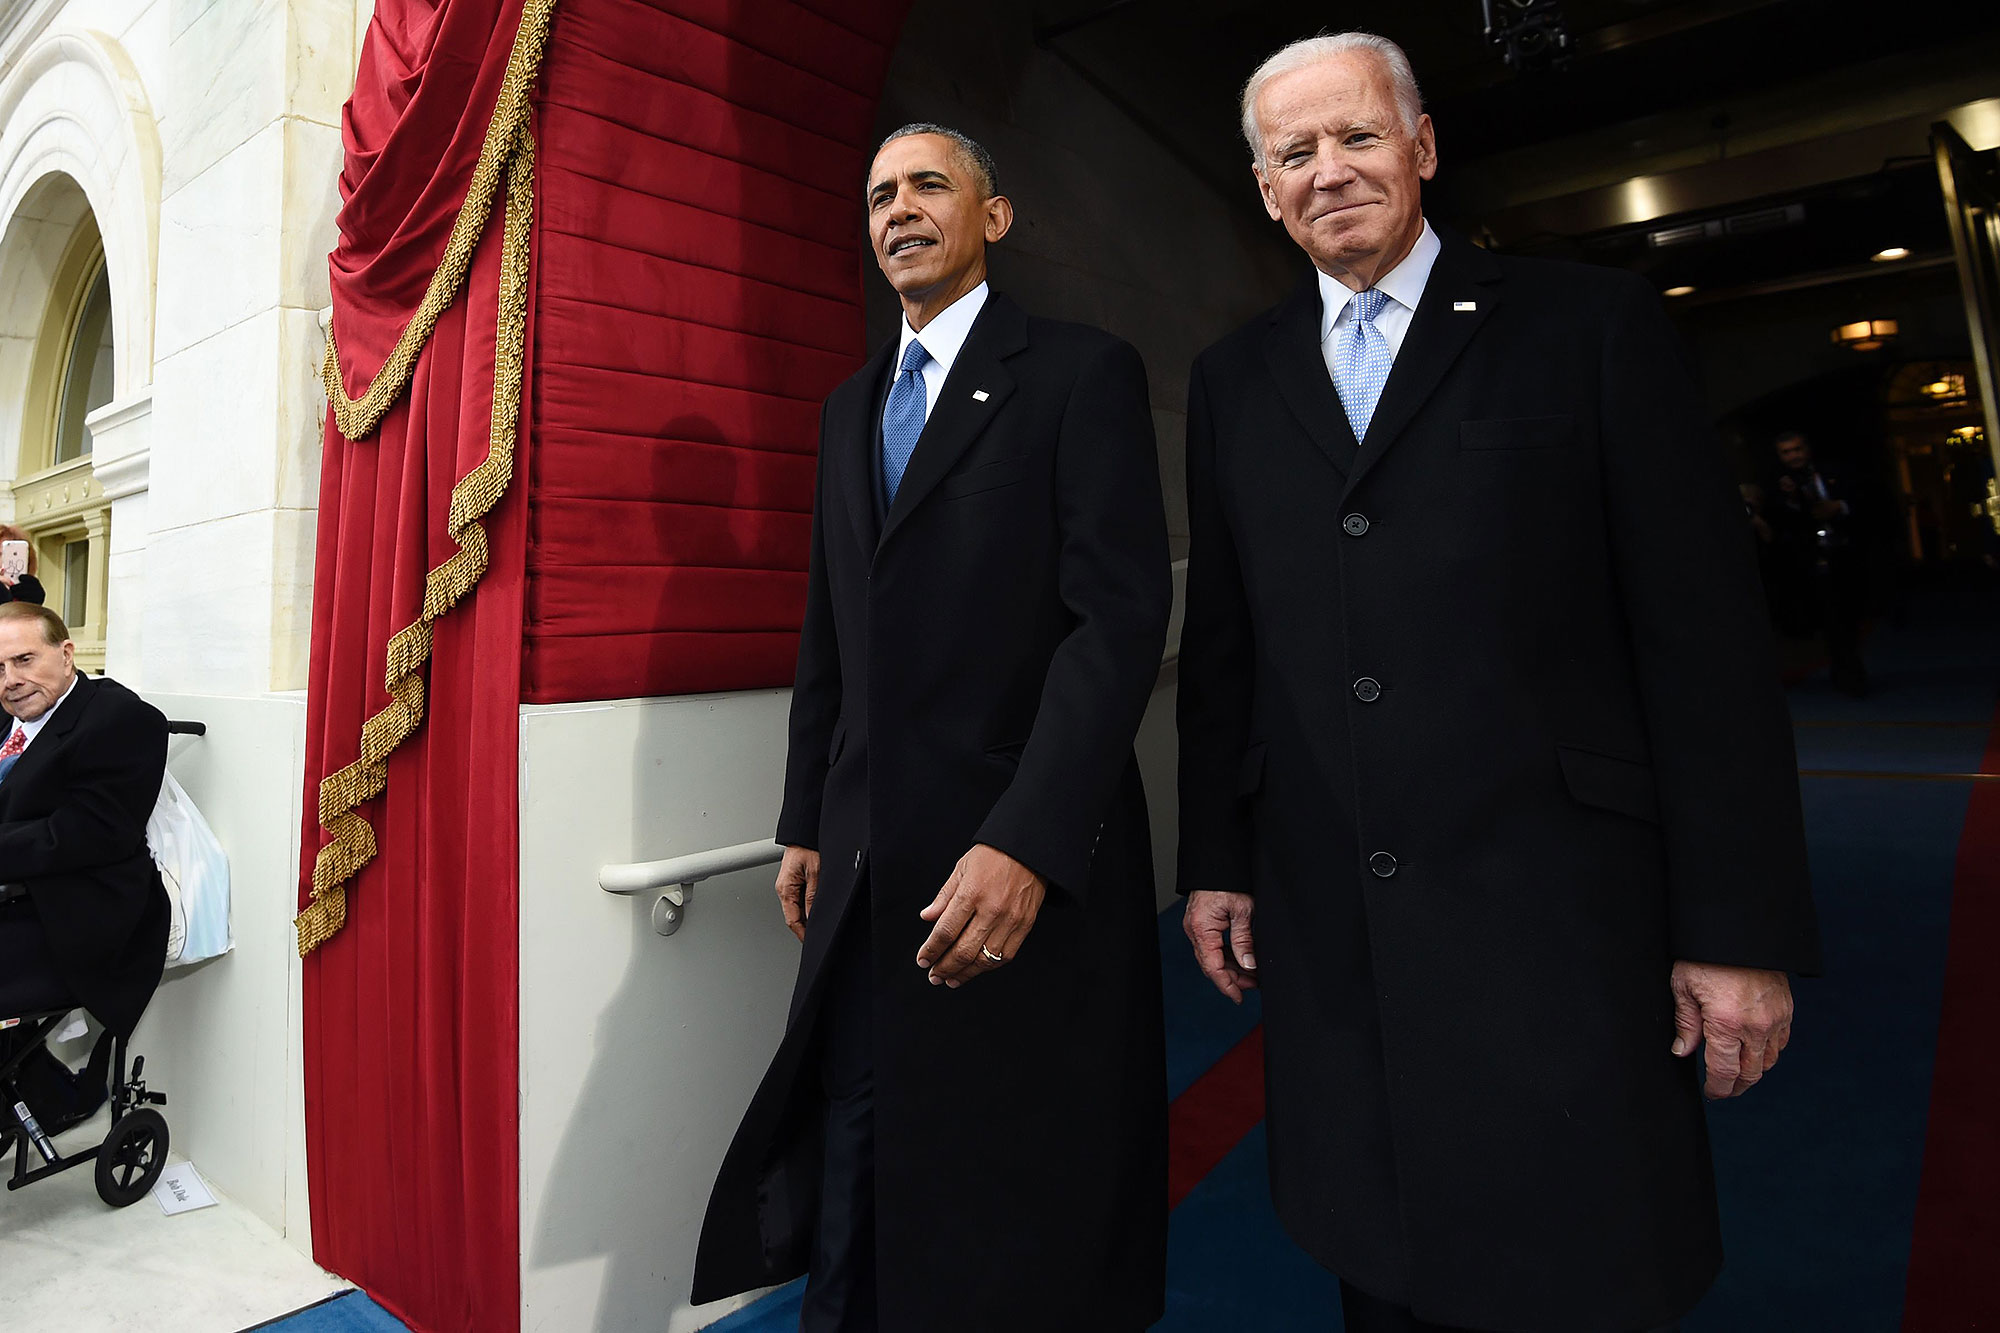 US President Barack Obama and Vice President Joe Biden arrive for the Presidential Inauguration of Donald Trump at the US Capitol in Washington, DC, on January 20, 2017. / AFP / POOL / SAUL LOEB (Photo credit should read SAUL LOEB/AFP/Getty Images)